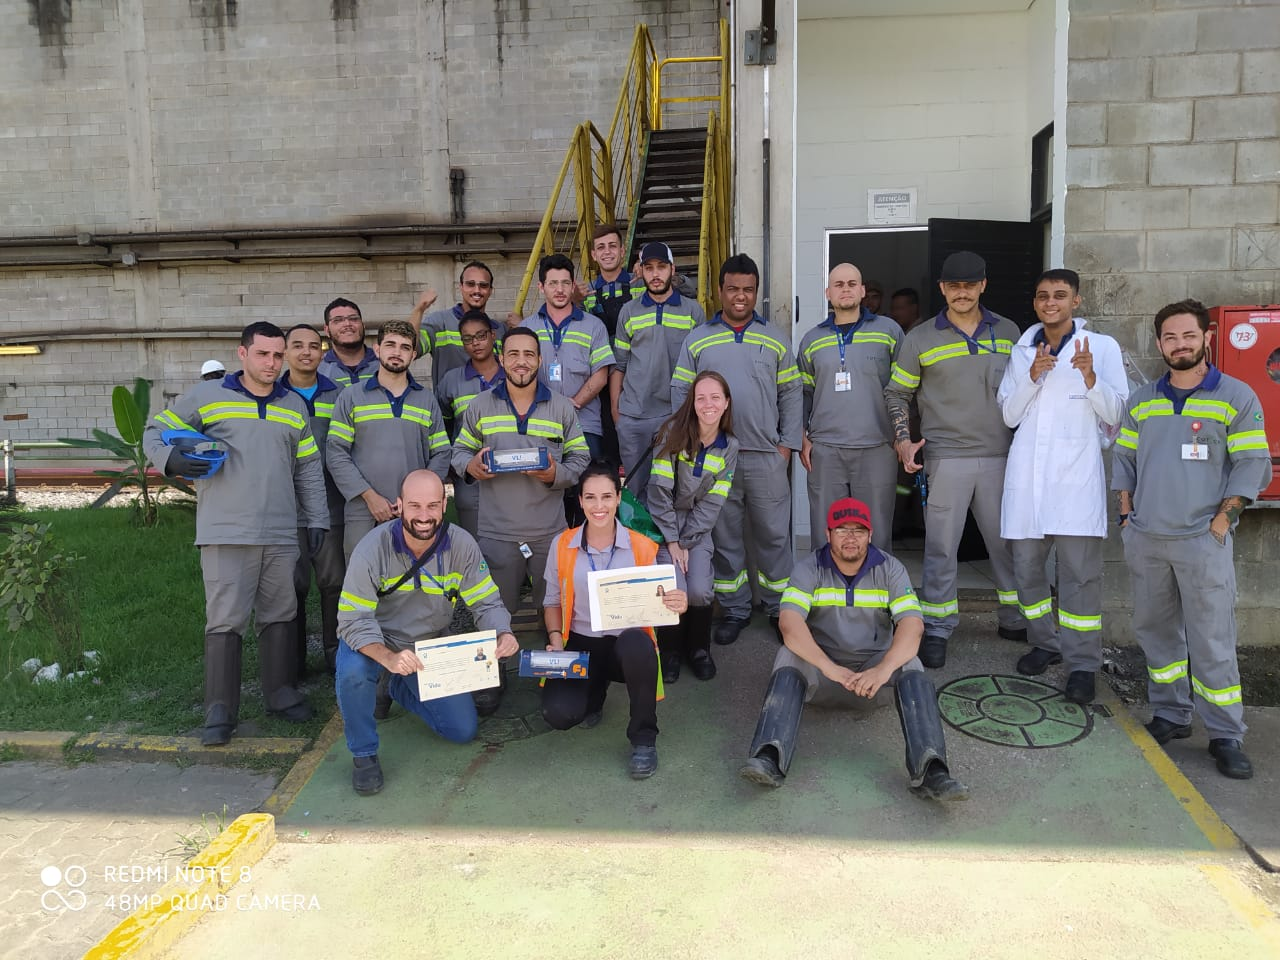 Cotecna Brazil team receiving TIPLAM Award